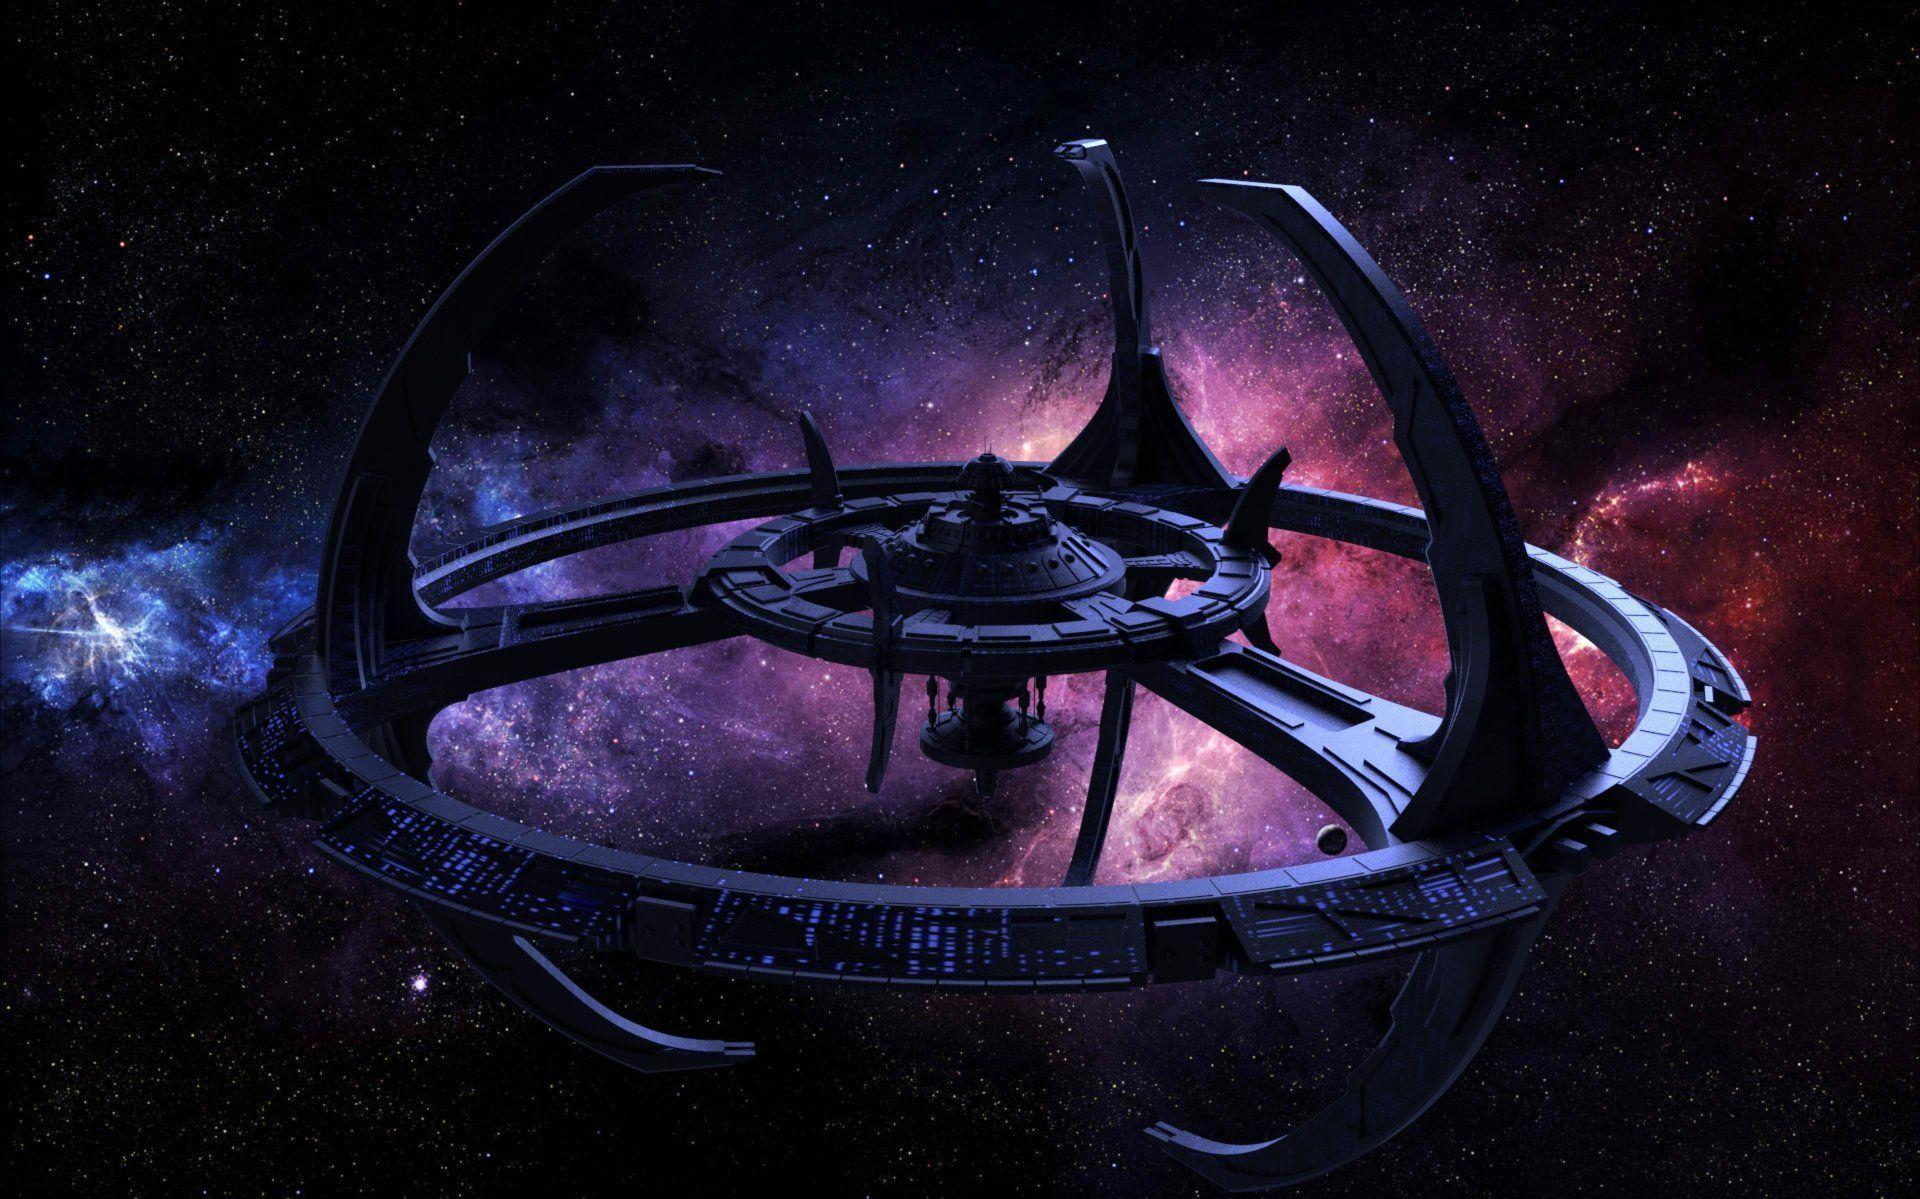 DEEP SPACE NINE Star Trek futuristic television sci